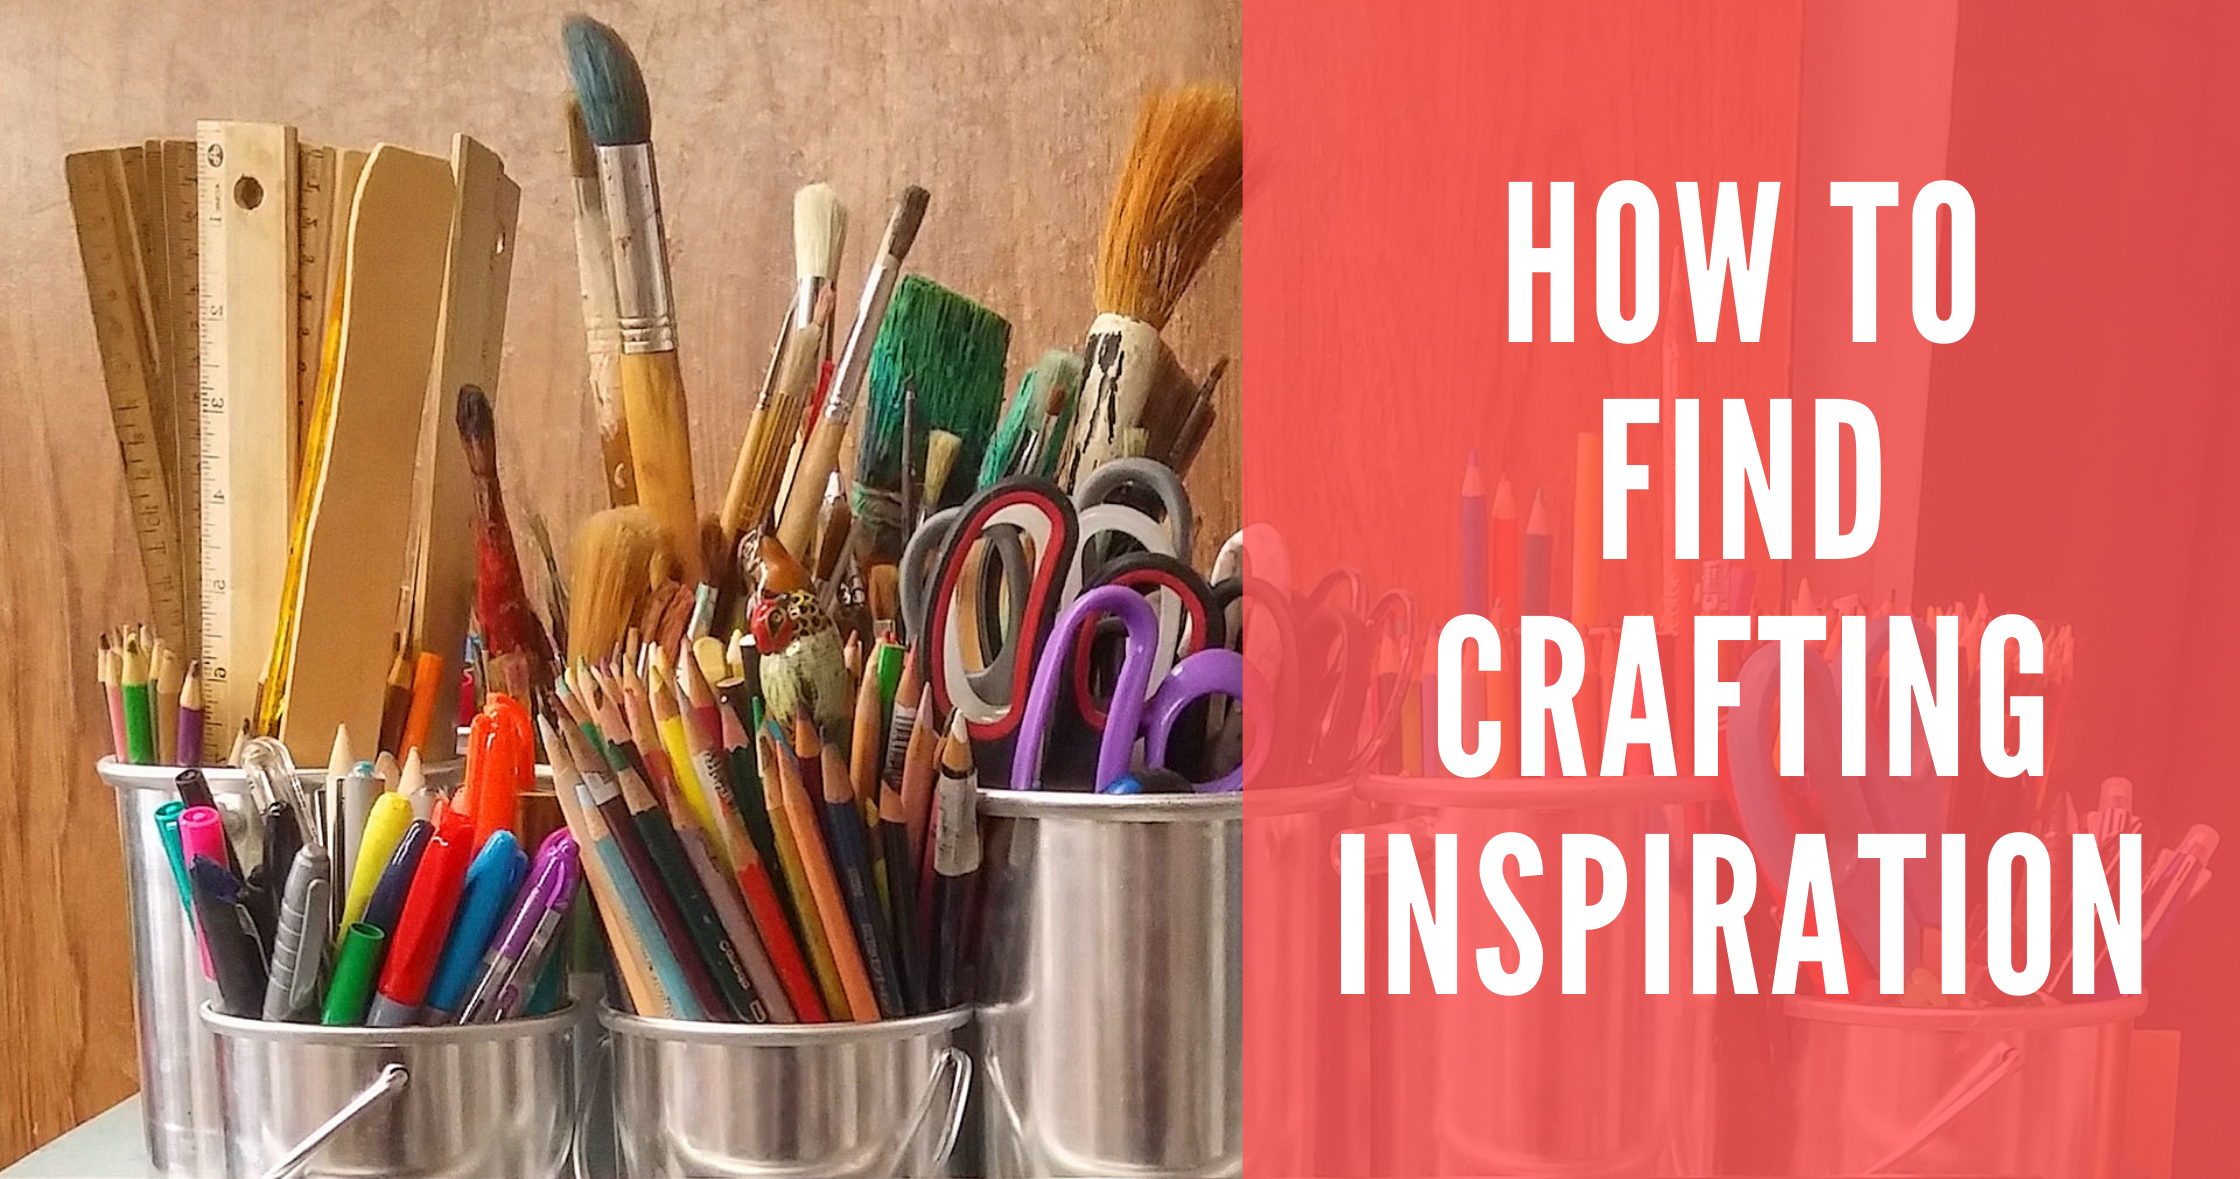 How To Find Crafting Inspiration